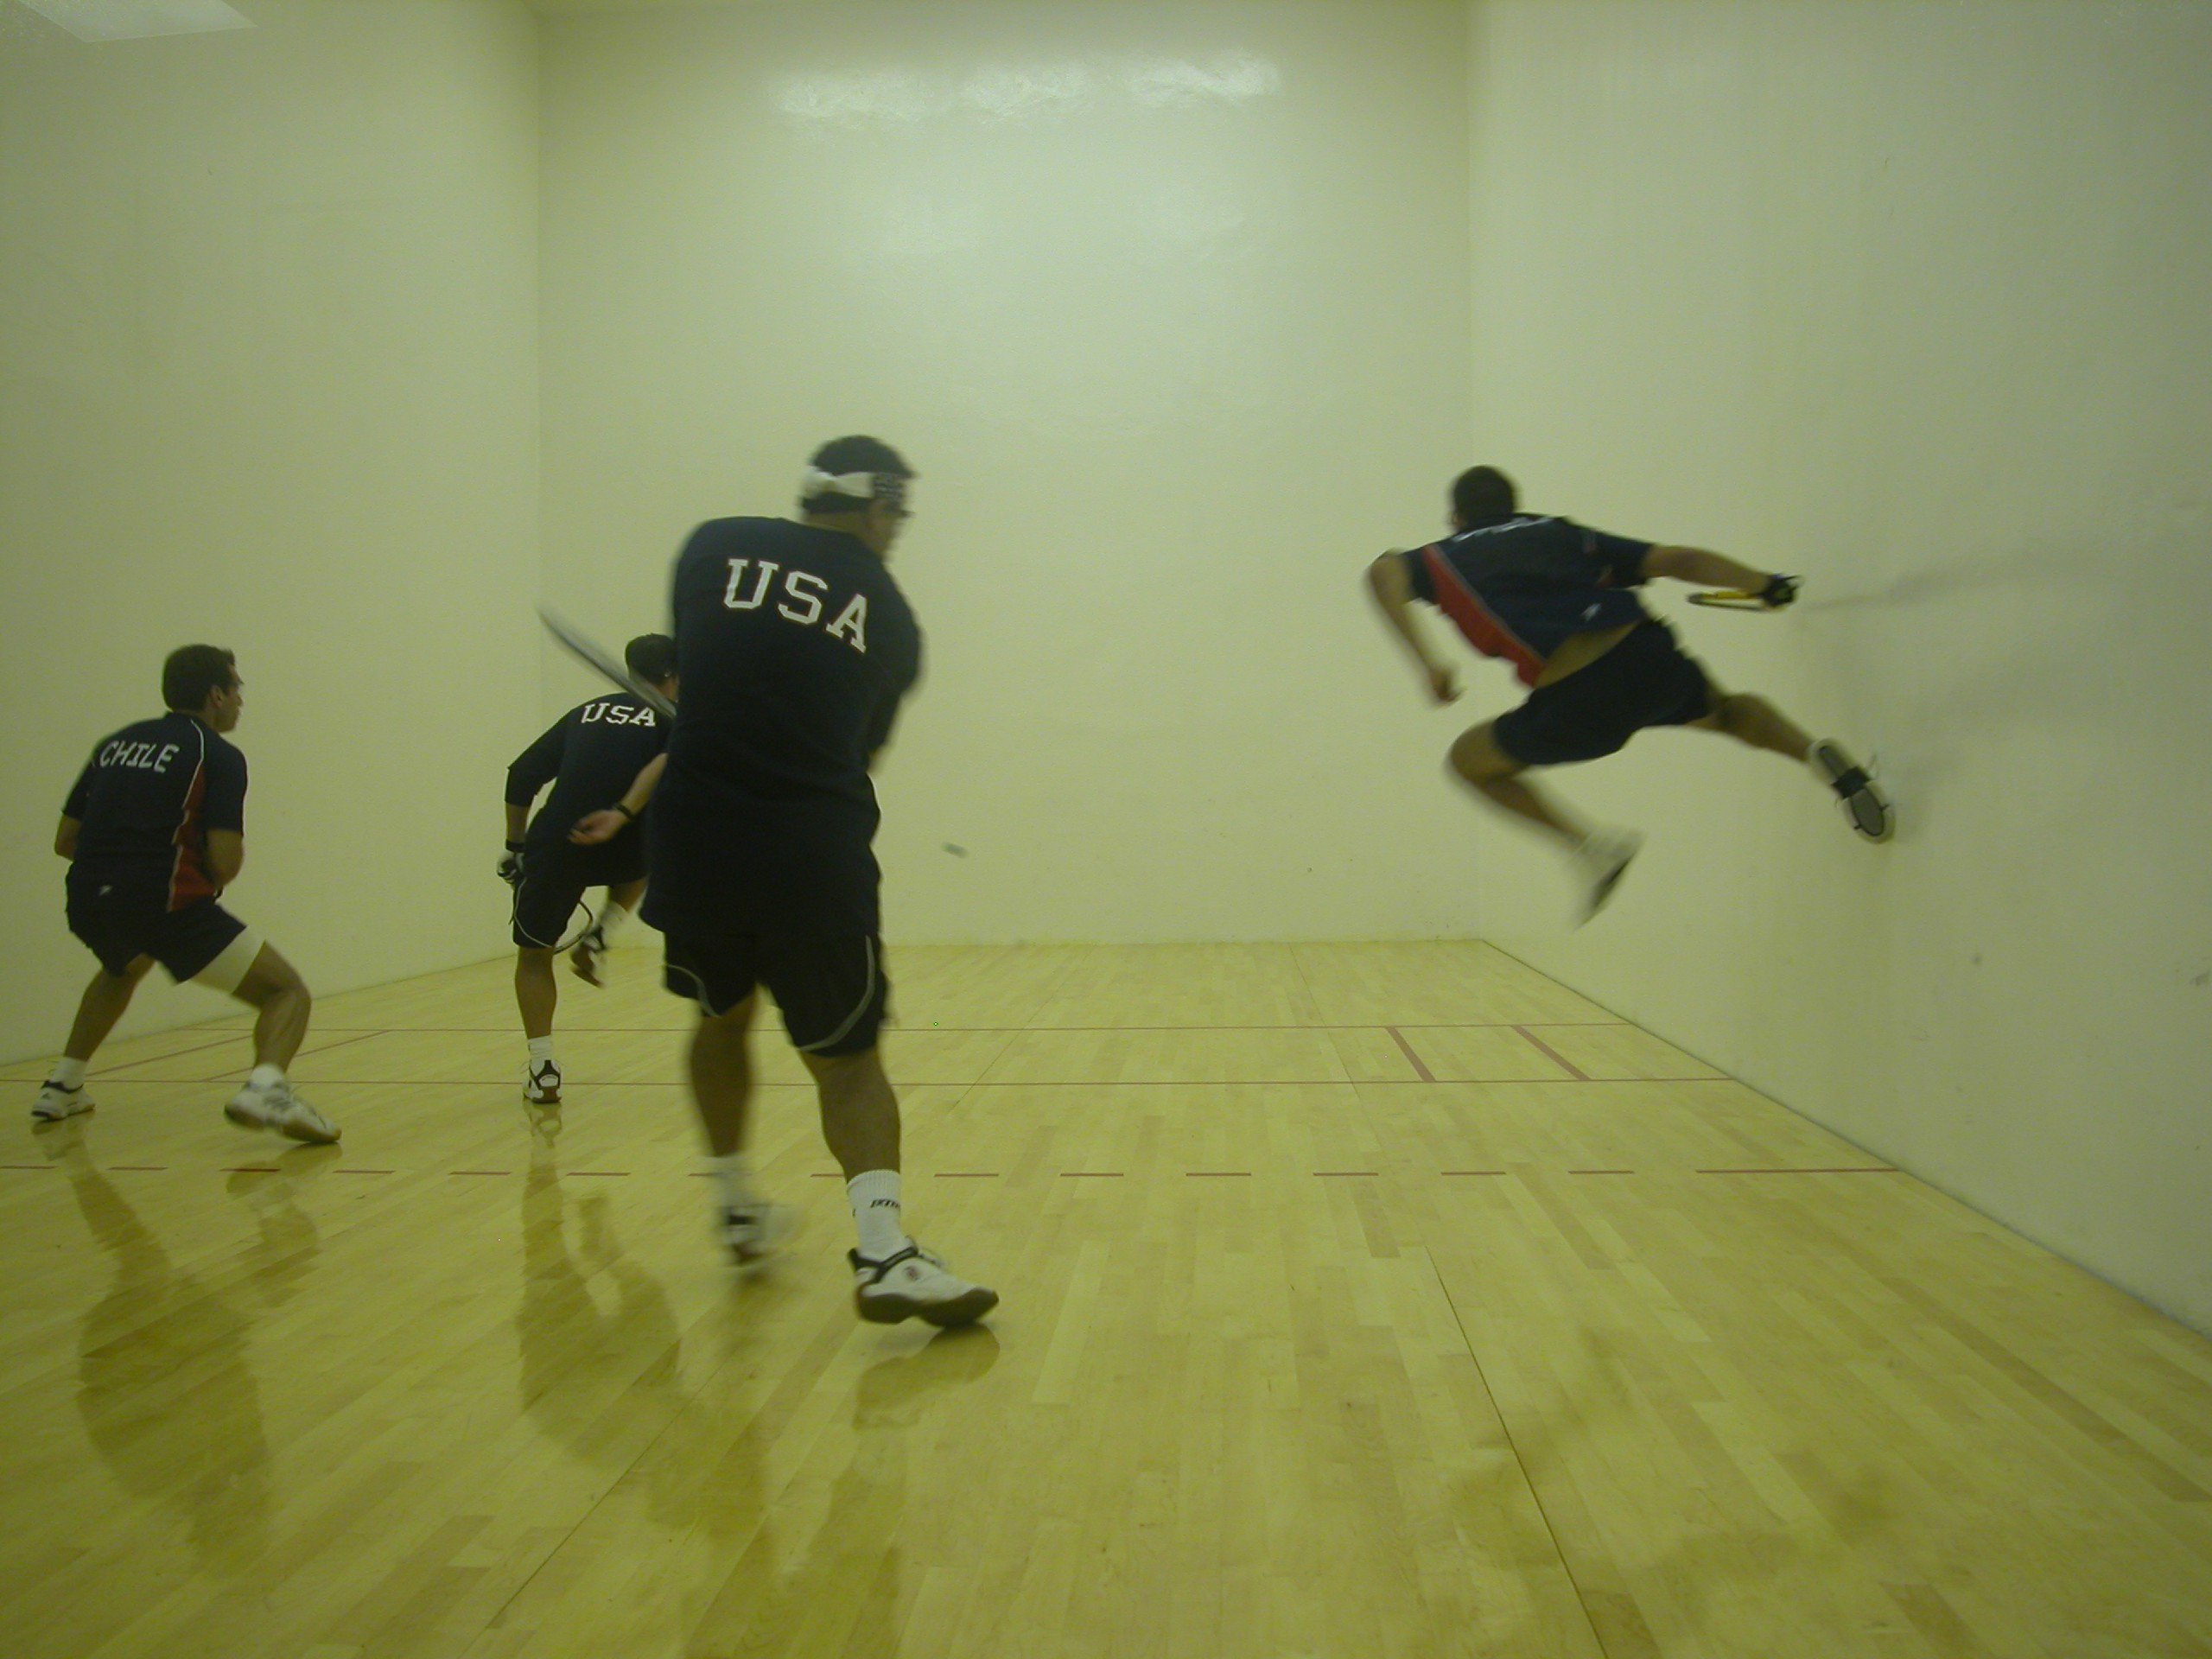 early racquet preparation when playing racquetball Photos – iconic  the racquetball physician to all the early pros brumfield is in the center, and then muehleisen, and an 'a' badminton and racquet player .